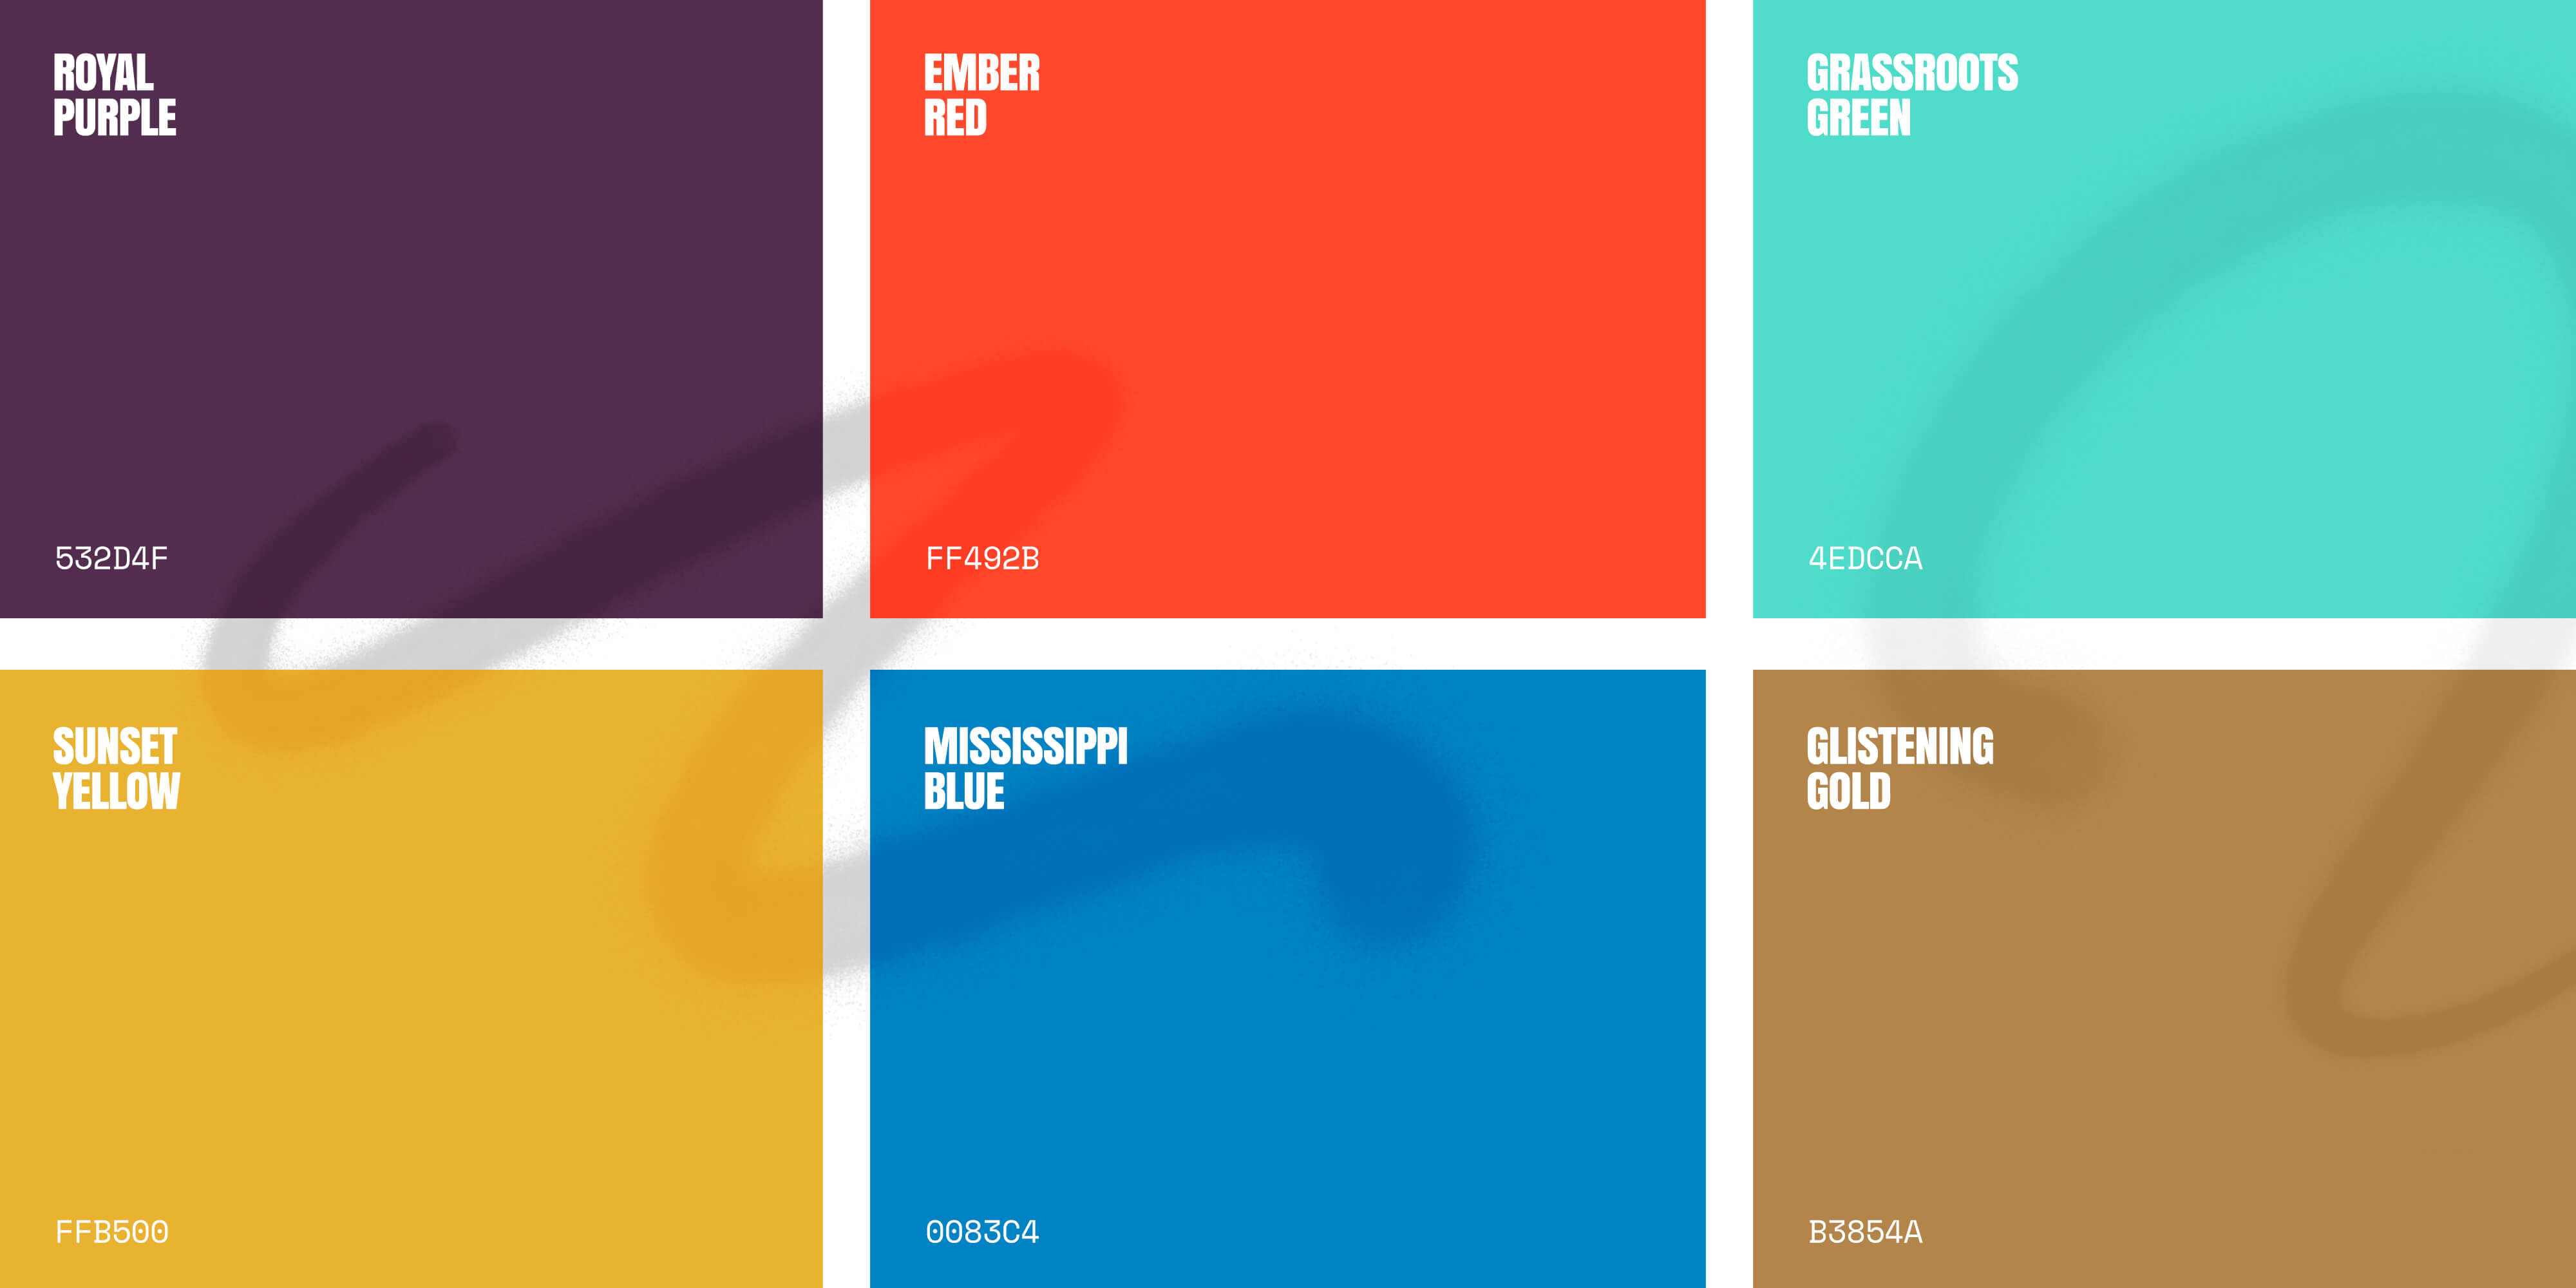 The grounded color palette: royal purple, ember red, grassroots green, sunset yellow, mississippi blue, and glistening gold